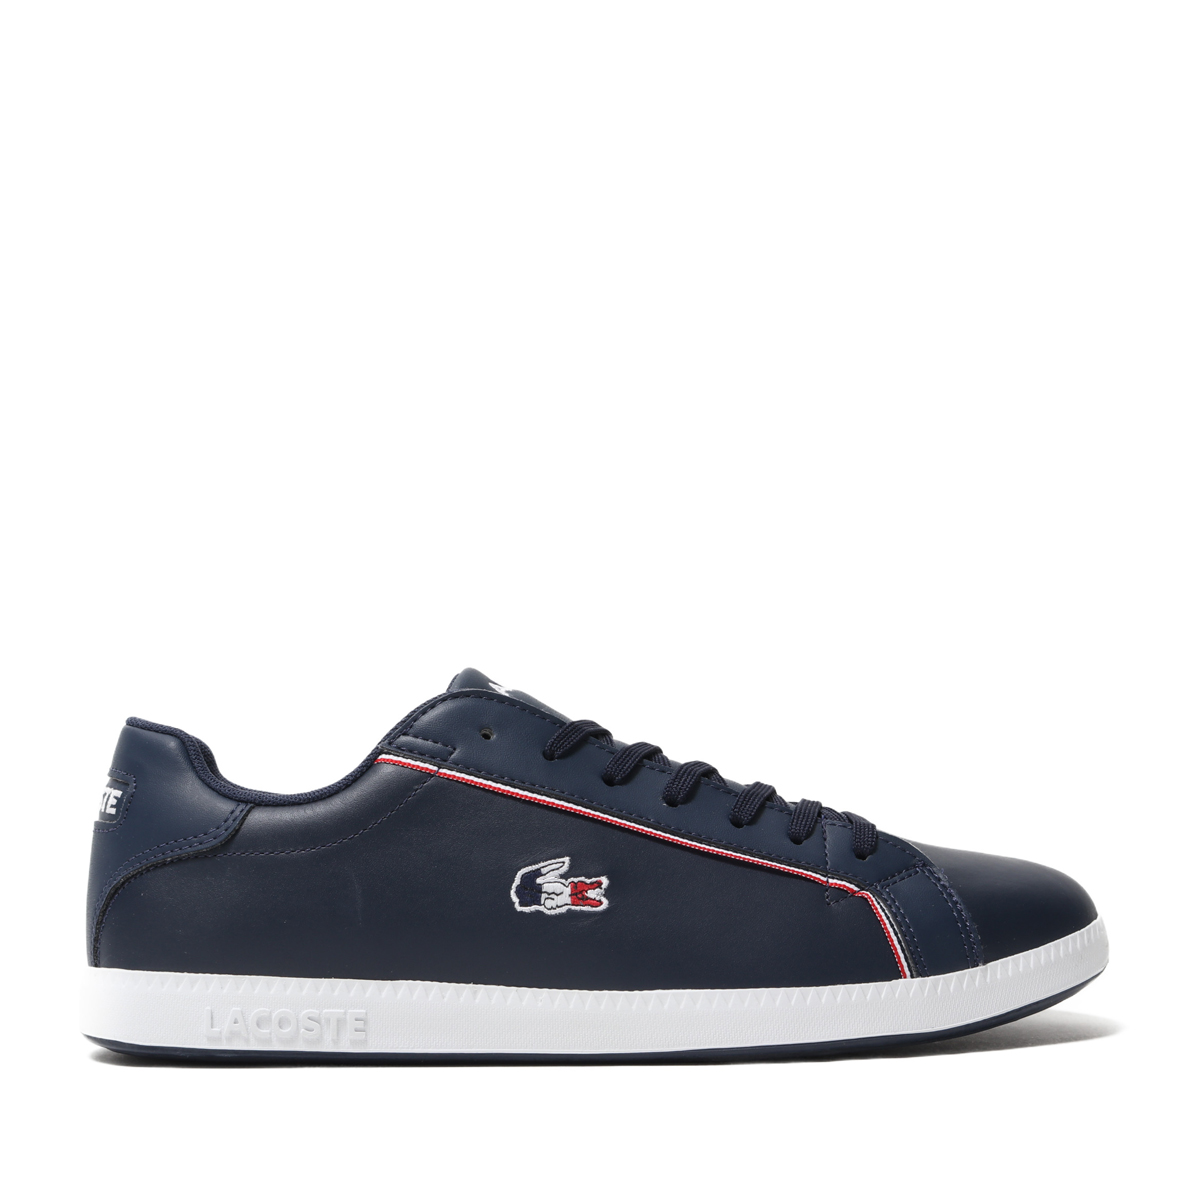 LACOSTE GRADUATE 119 3(NVY/WHT/RED)(ラコステ グラジュエート 119 3)【メンズ】【スニーカー】【19SP-I】